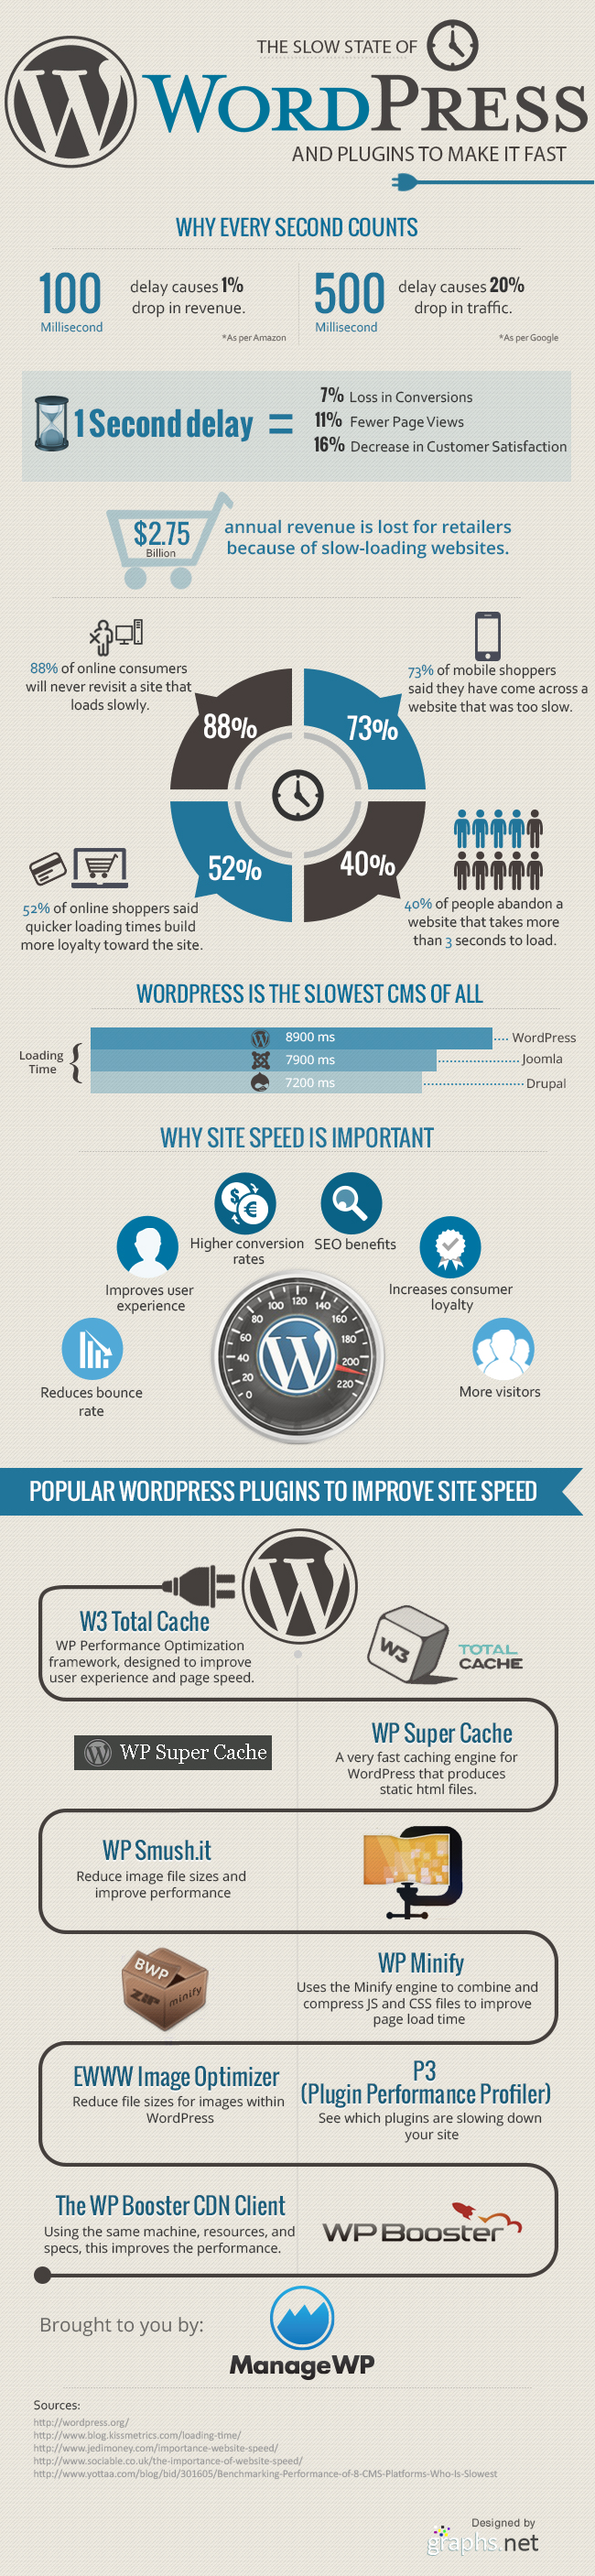 State of WordPress